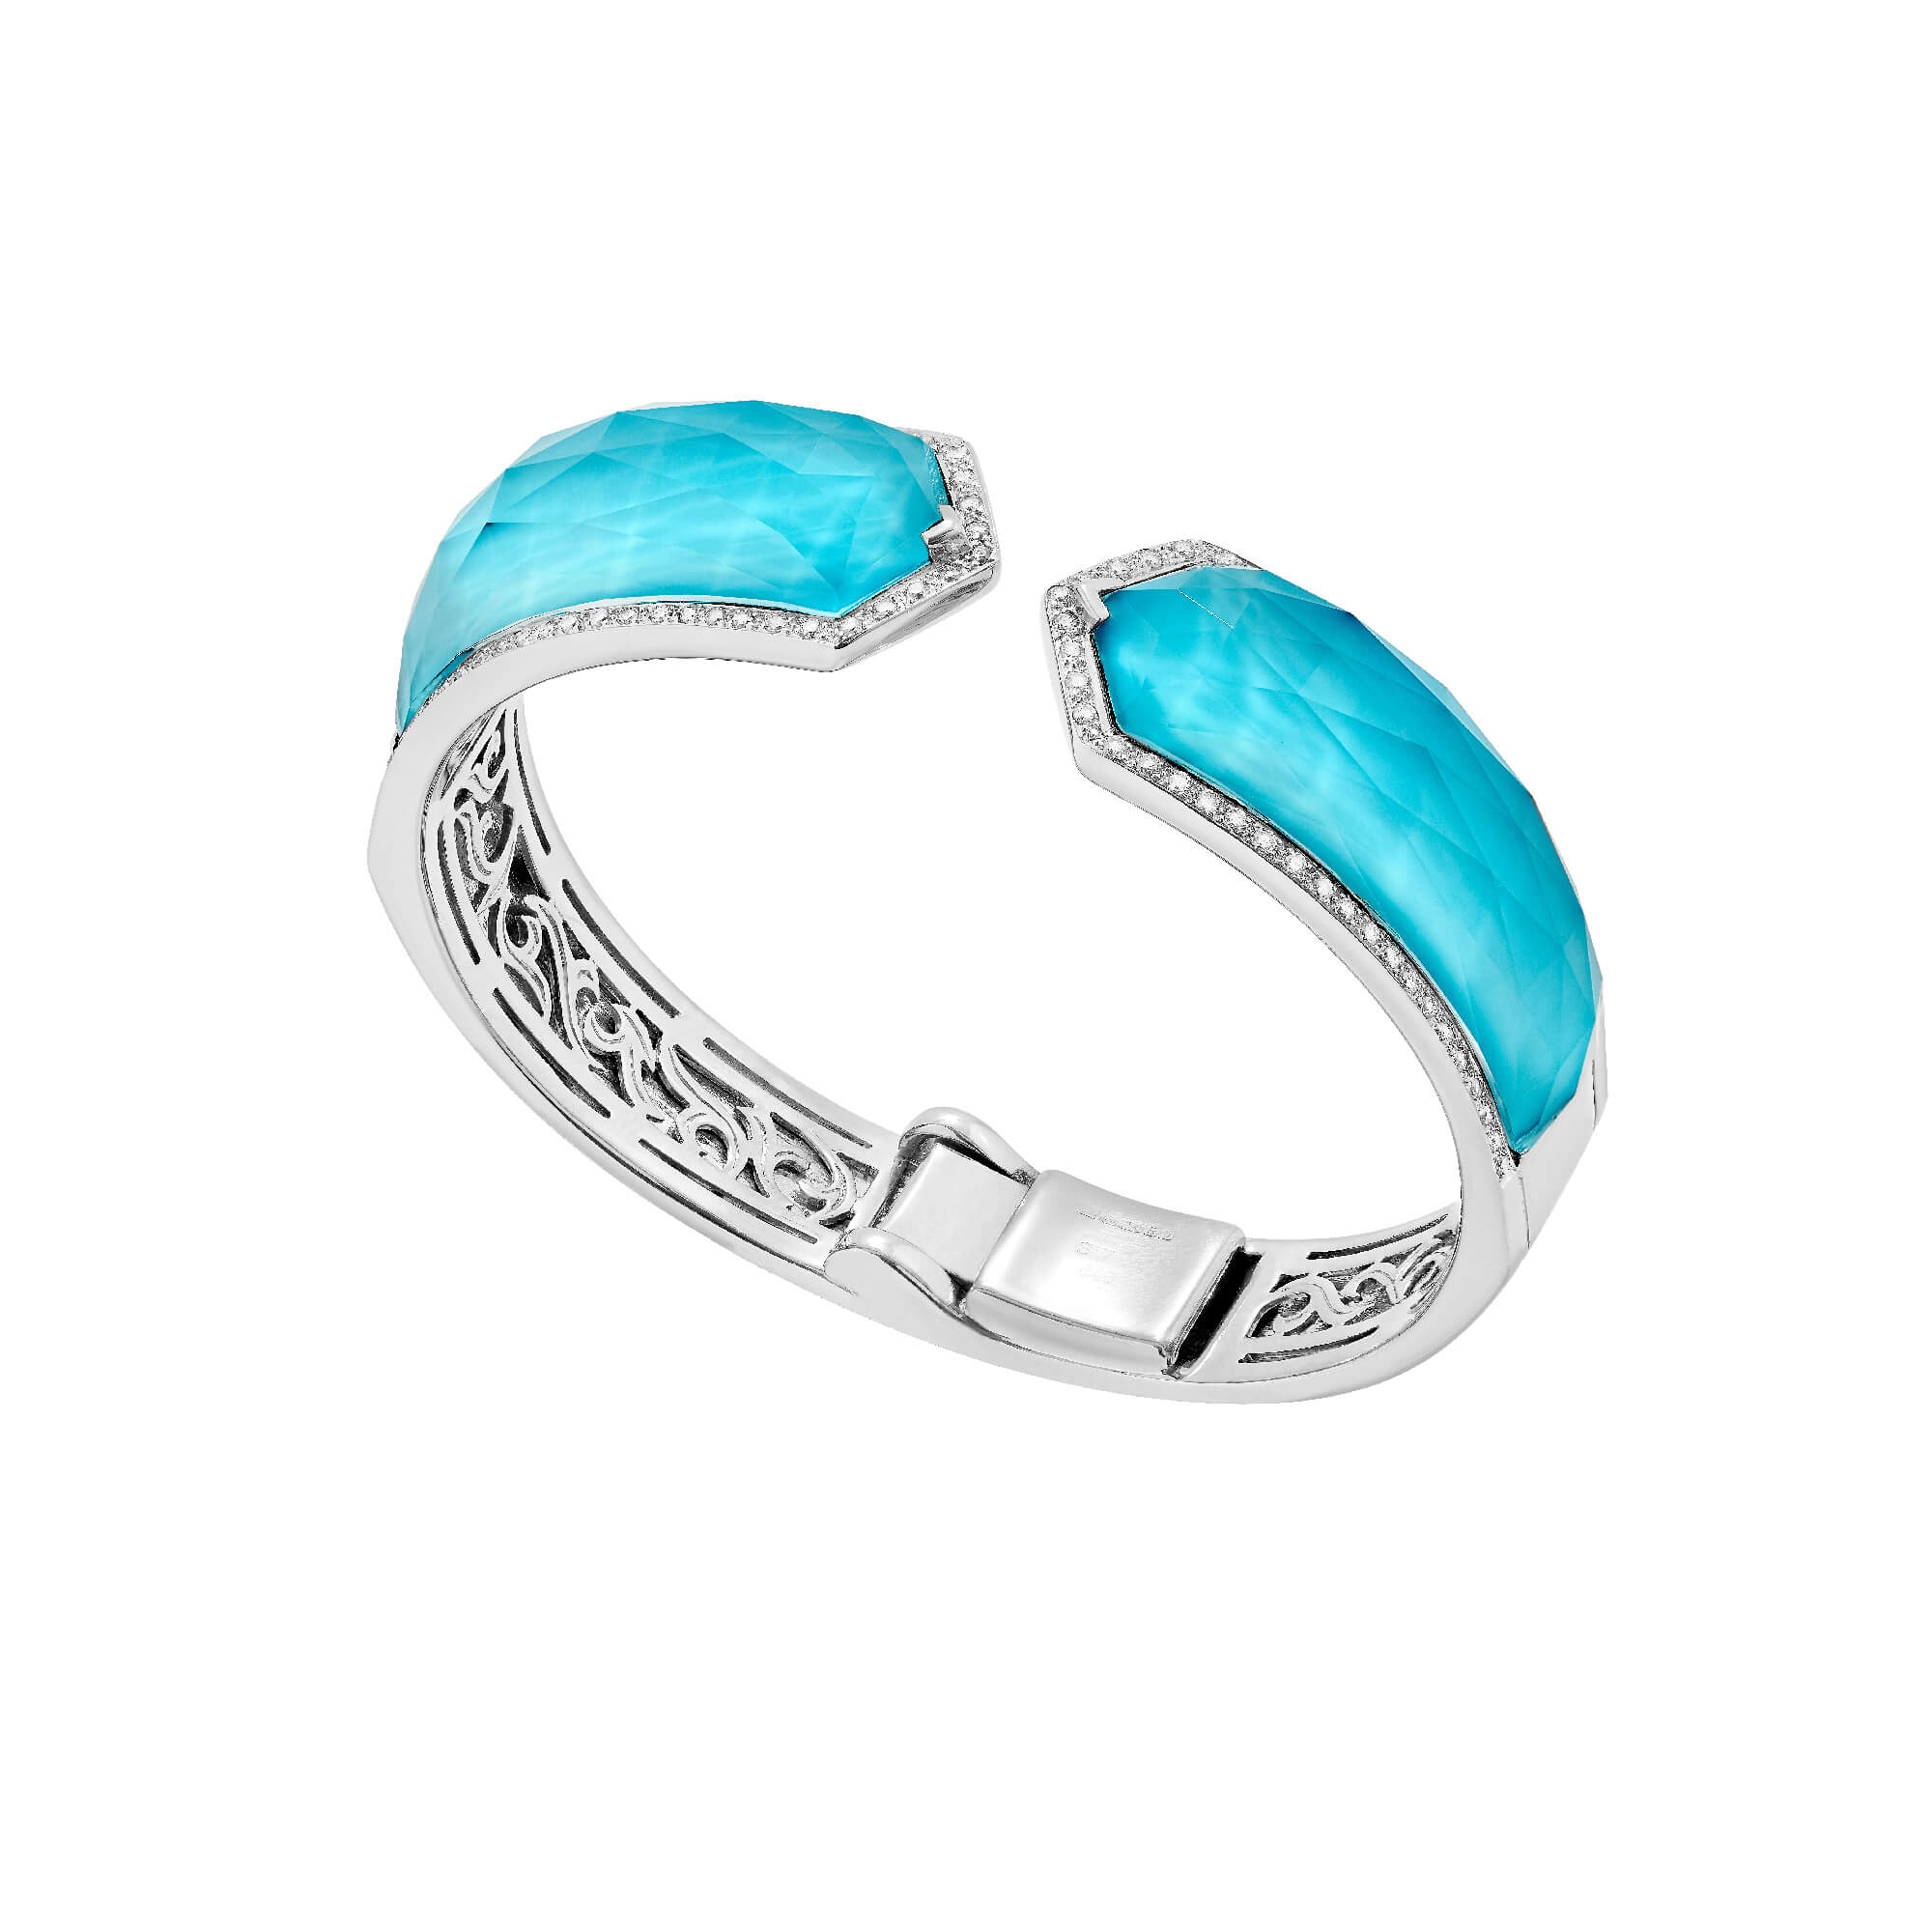 Turquoise Crystal Haze Bracelet | No Regrets